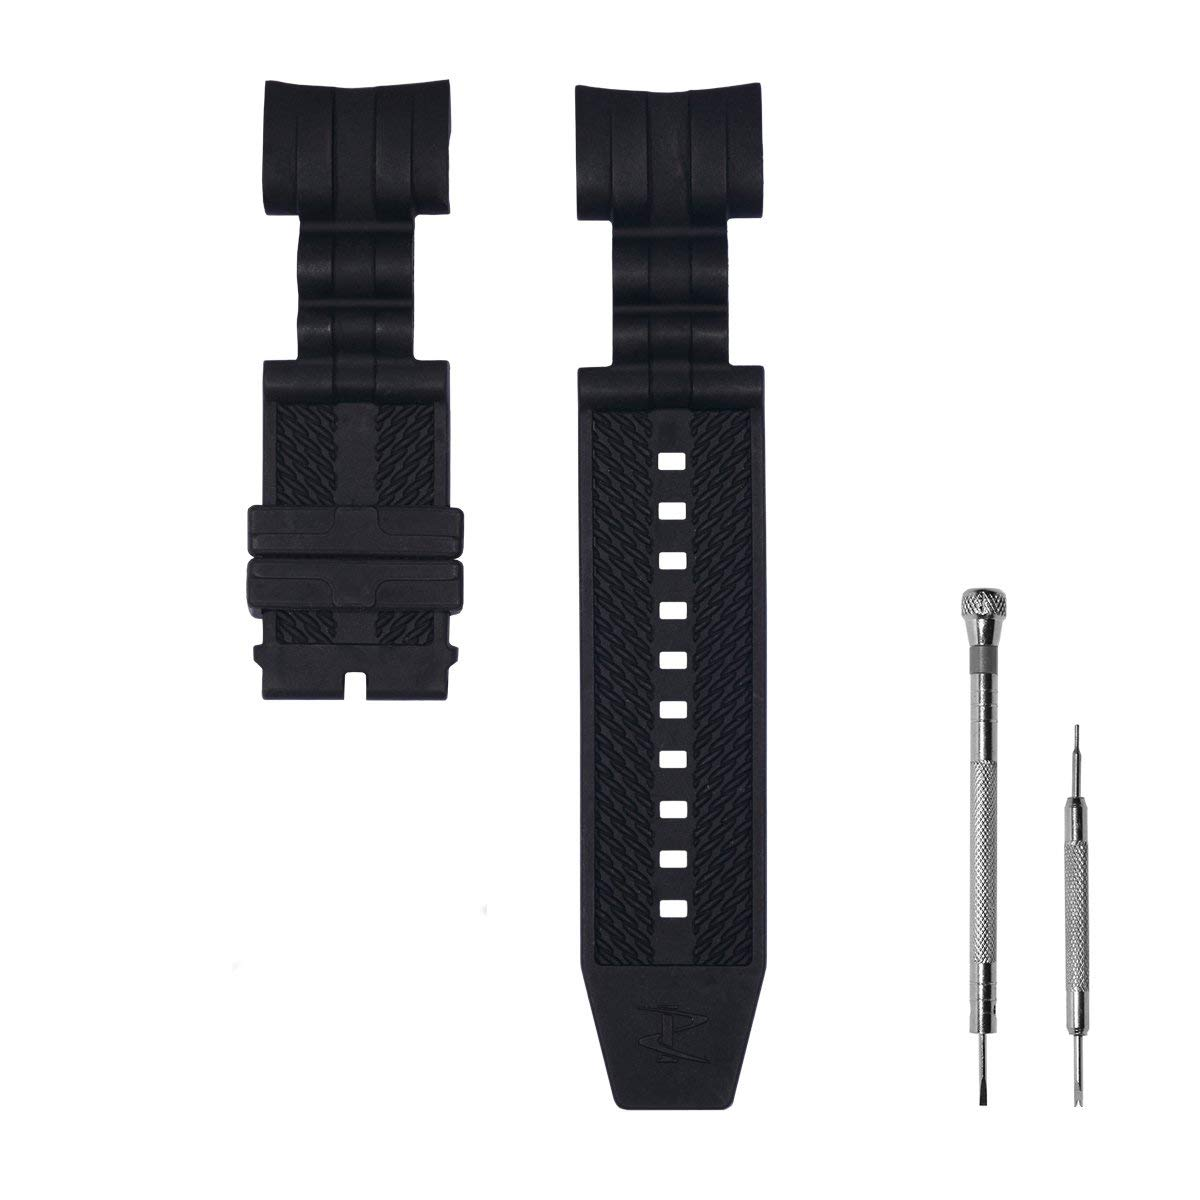 CACA for Invicta Watch Replacement Rubber Silicone Band/Strap for Invicta Reserve Jason Taylor Bolt Zeus - Black Invicta Watch Strap